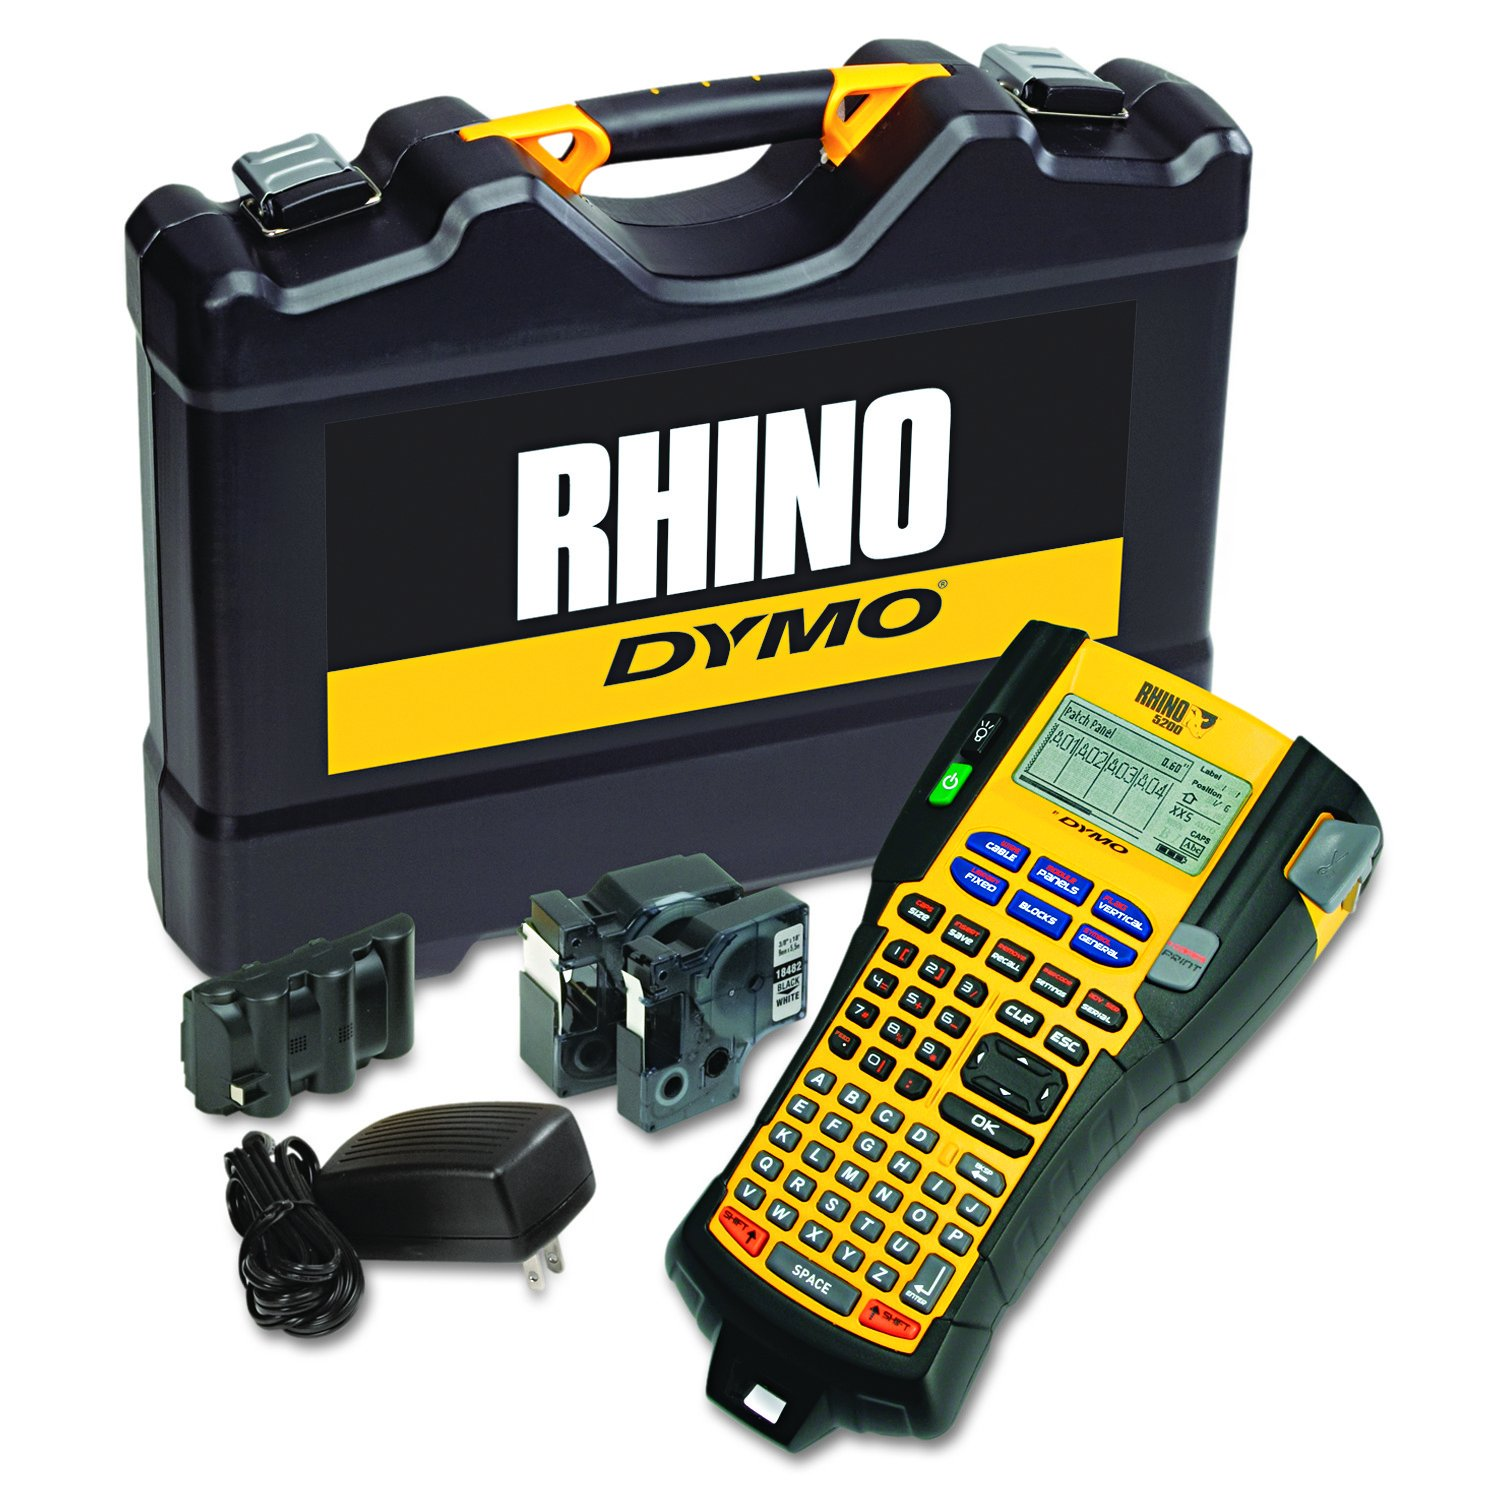 "DYMO Rhino 5200 Industrial Label Maker Cary Case Kit with 2 Rolls of Vinyl Labels, 3/4"" & 3/8"", Black on White (1756589)"